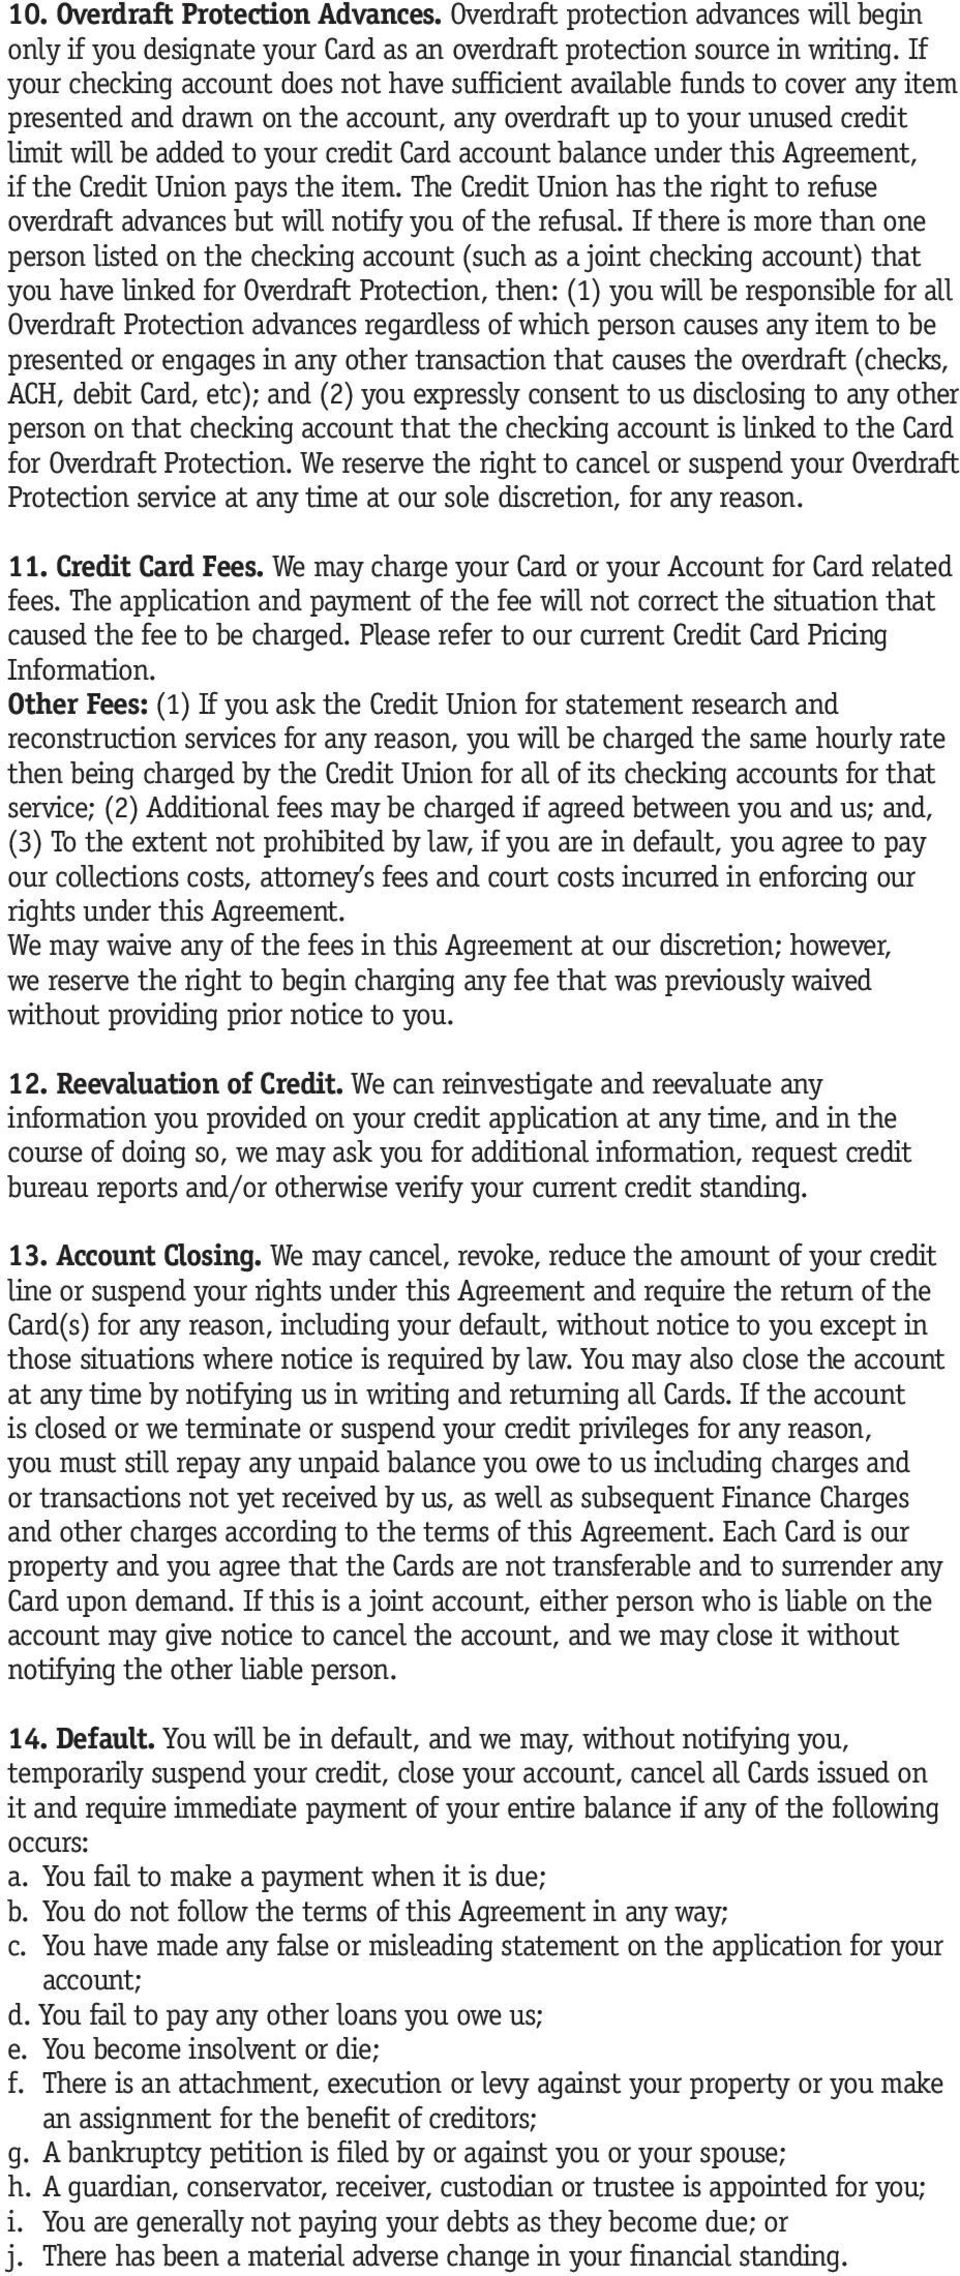 account balance under this Agreement, if the Credit Union pays the item. The Credit Union has the right to refuse overdraft advances but will notify you of the refusal.